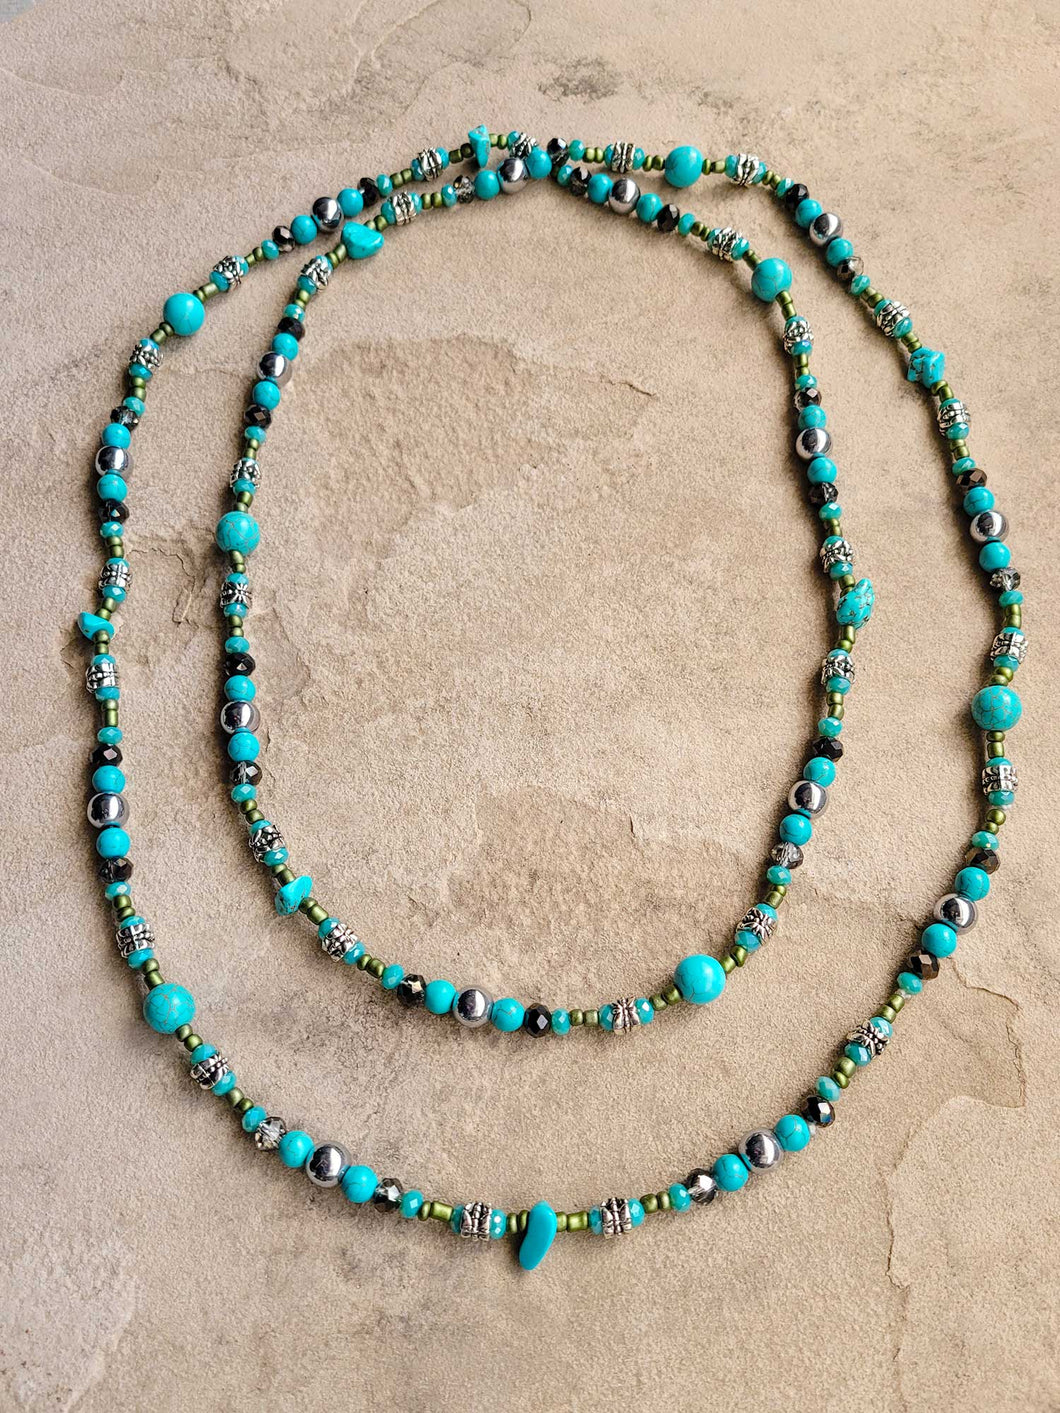 Turquoise Dreams Long Necklace